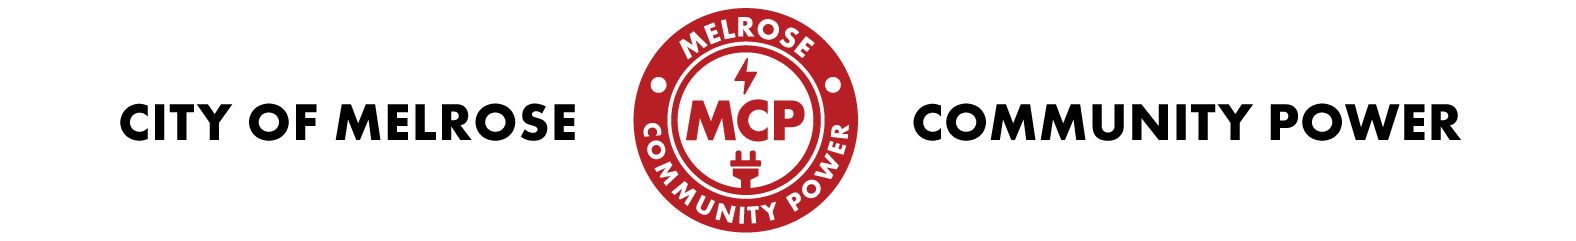 City of Melrose Community Power program